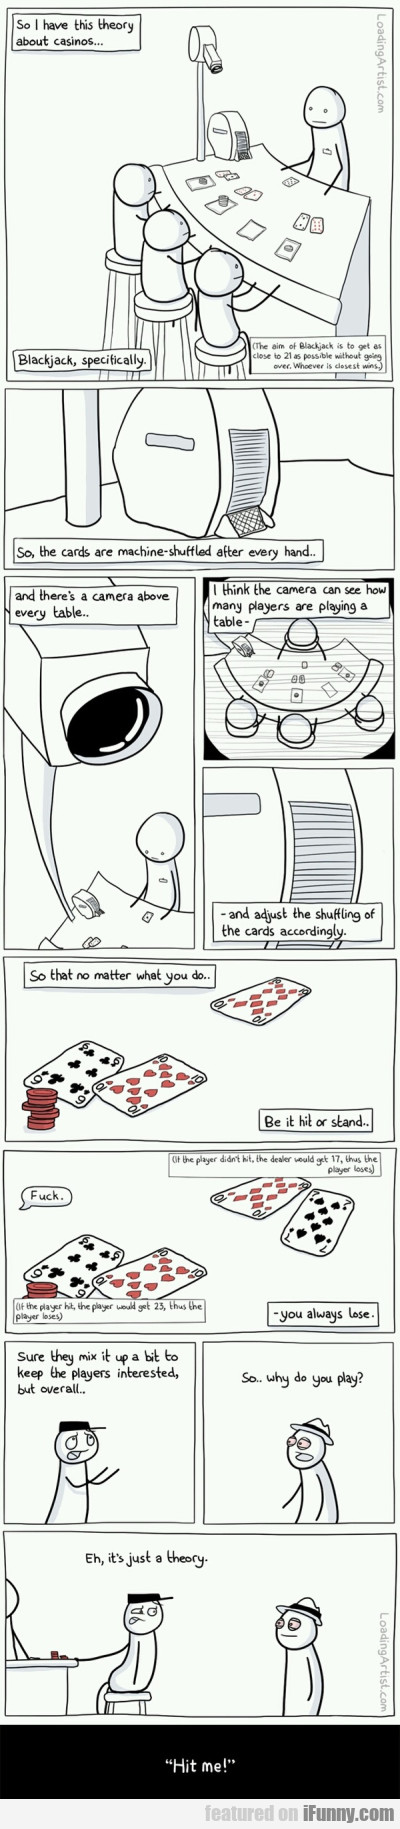 So, I Have This Theory About Casinos...